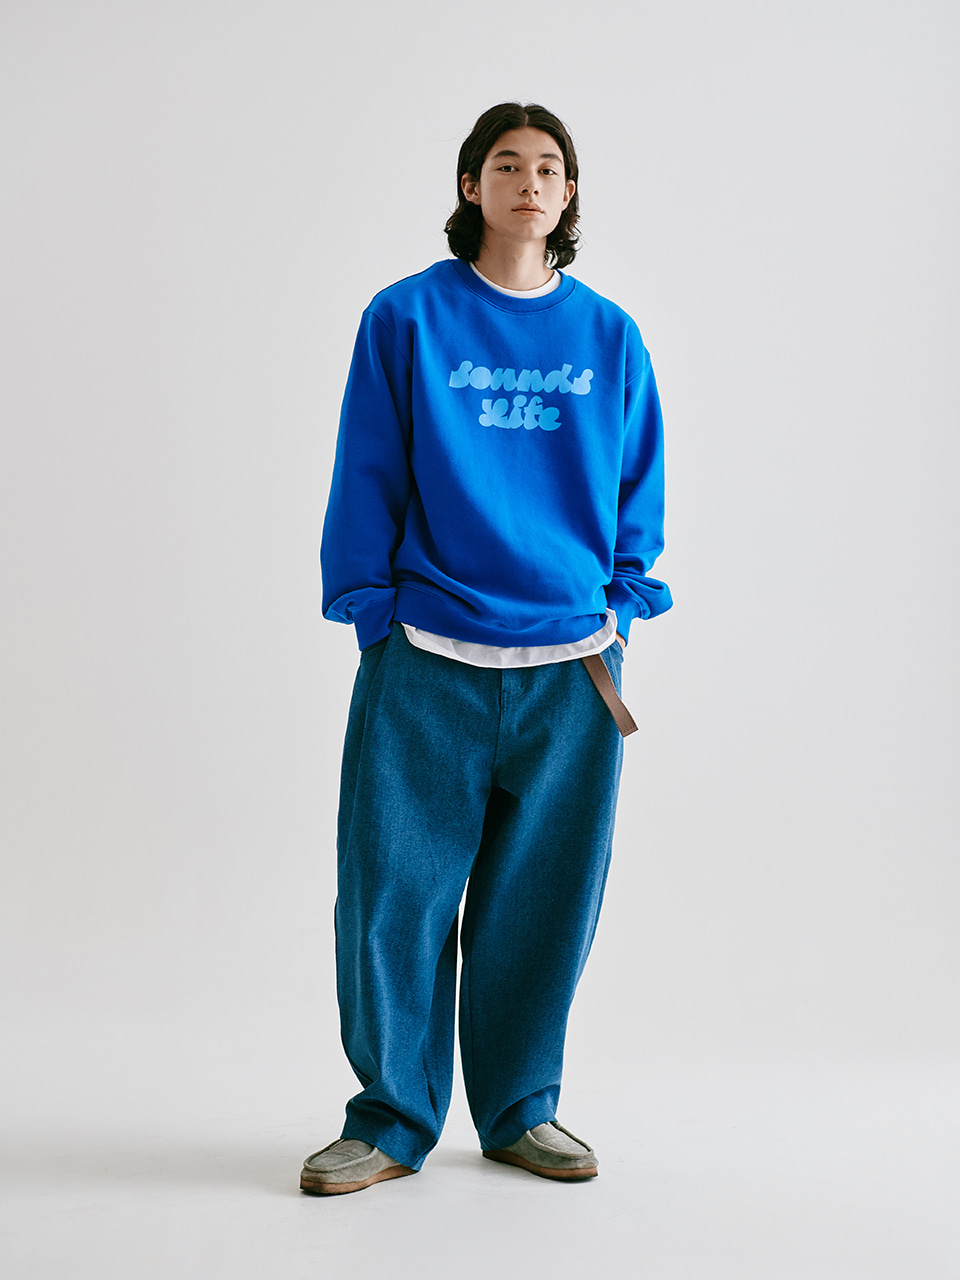 [FW20 Sounds Life] Balloon Snap Pants(Blue) 스테레오 바이널즈[FW20 Sounds Life] Balloon Snap Pants(Blue)